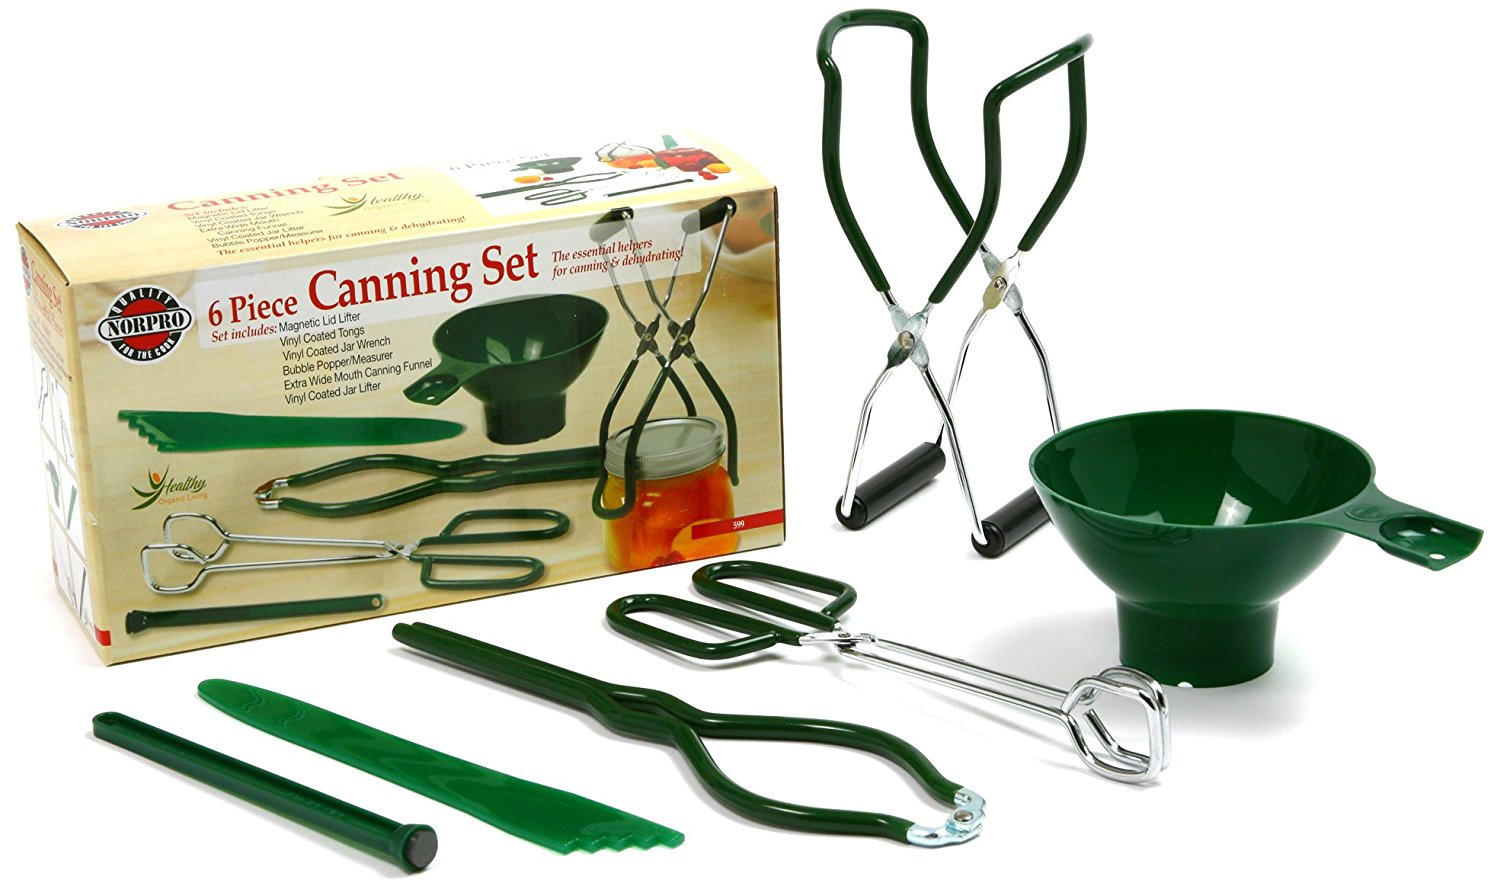 Canning Set without the Pot